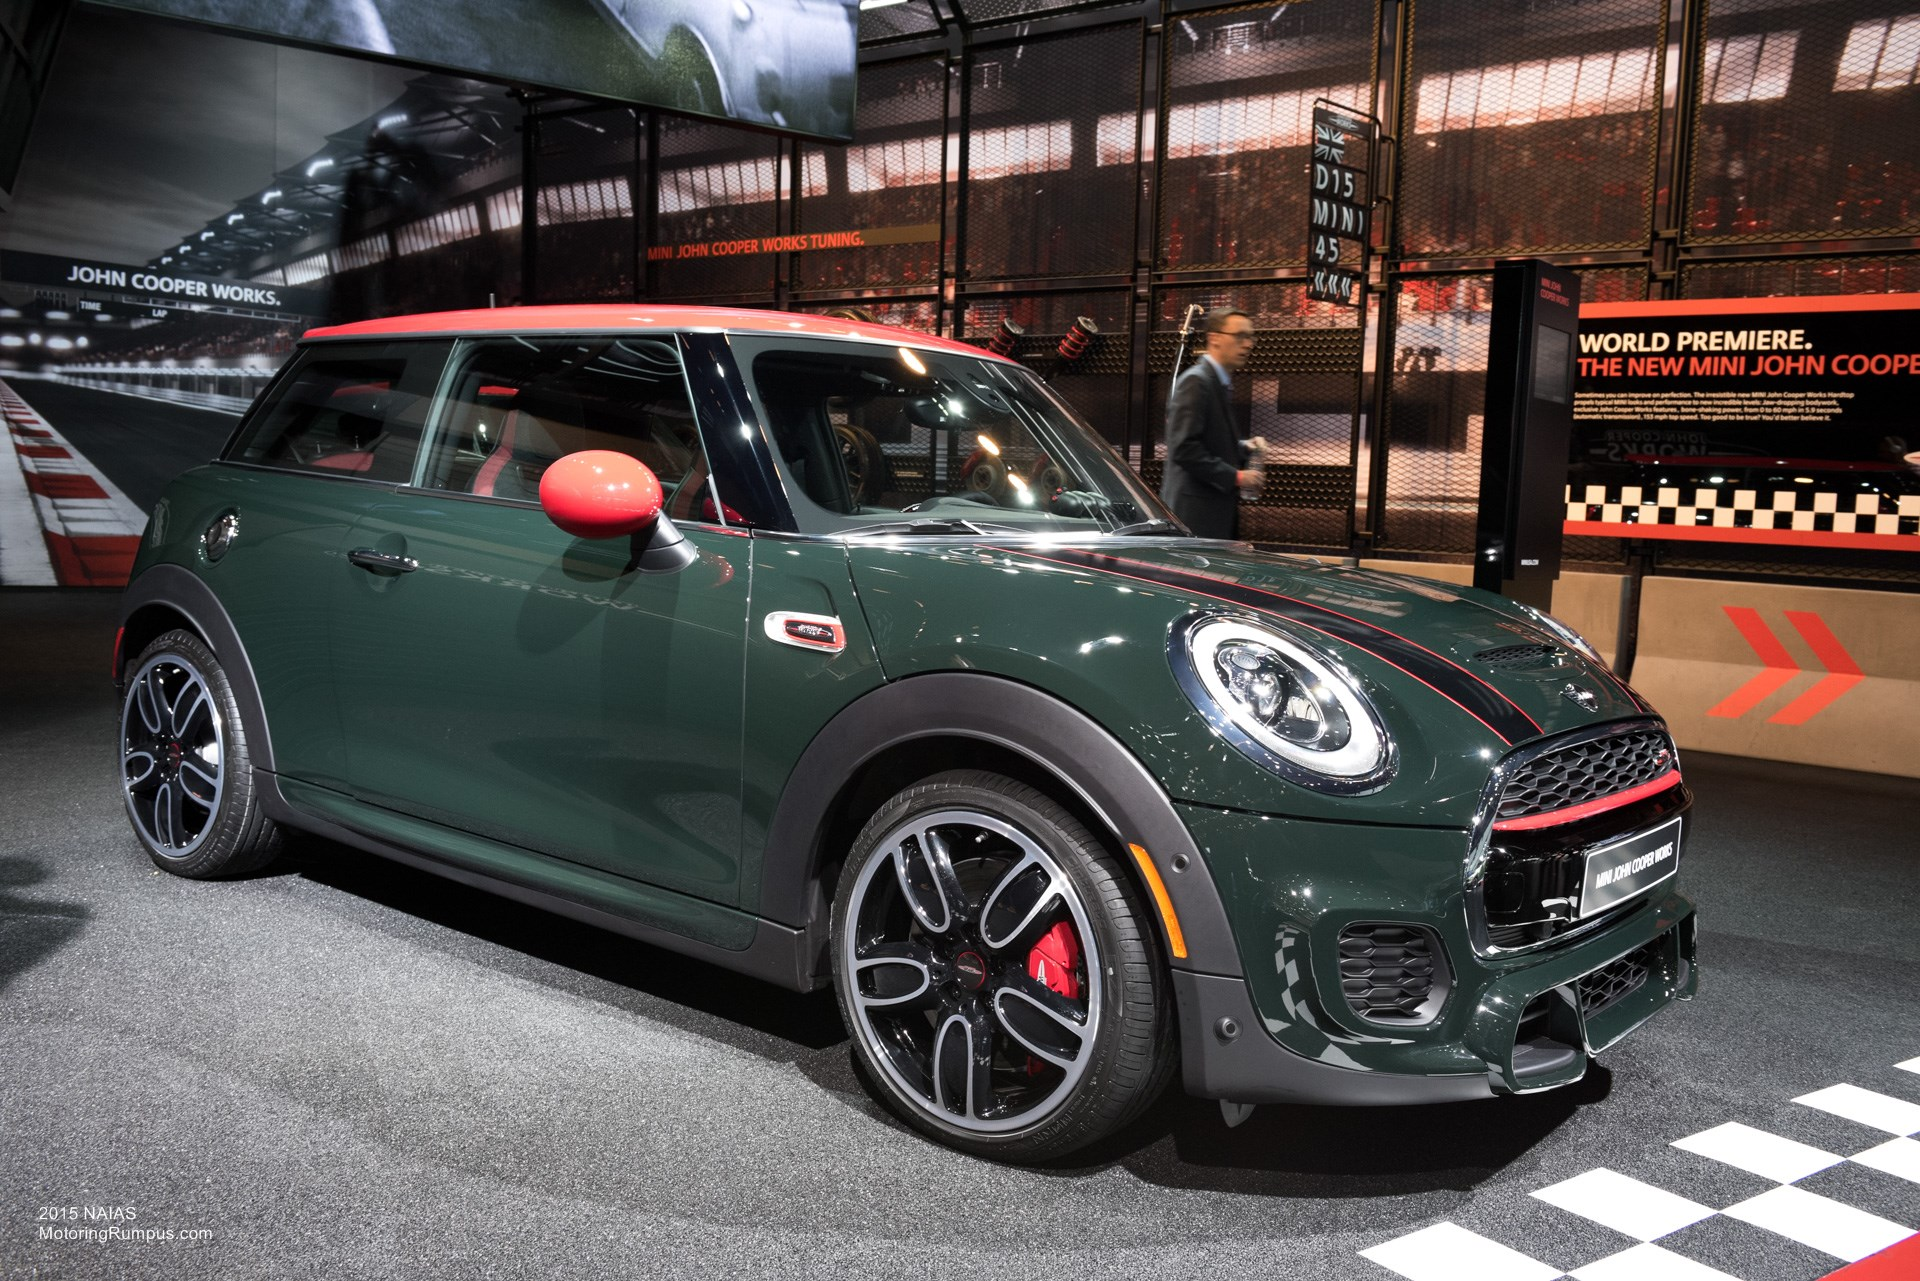 2015 NAIAS Mini John Cooper Works